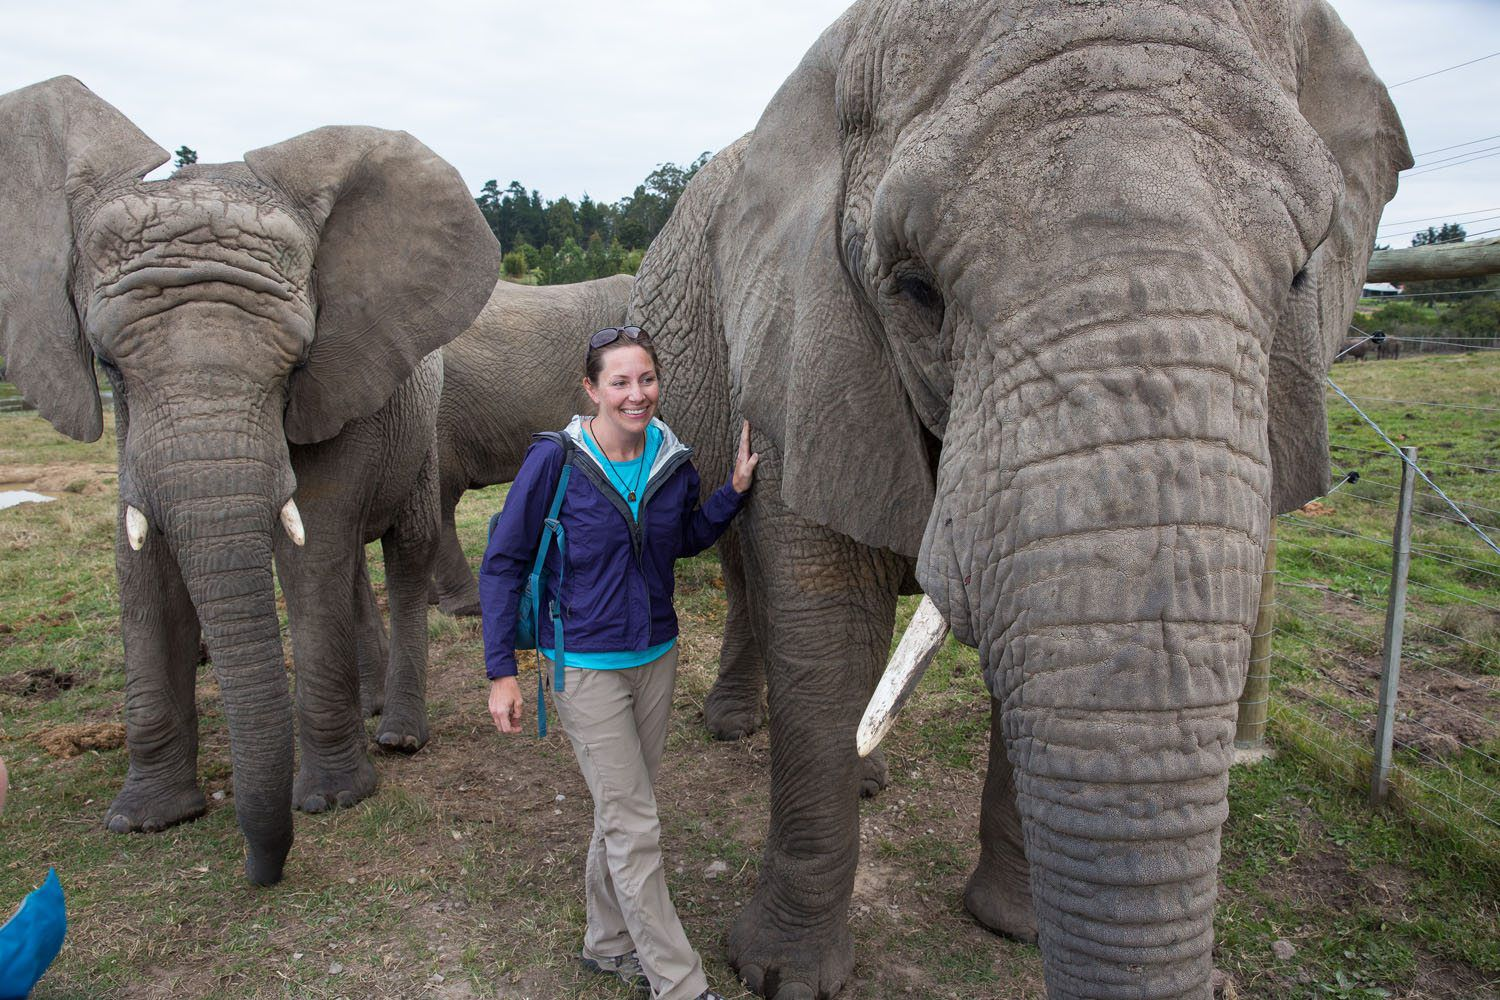 Julie Rivenbark and Elephants